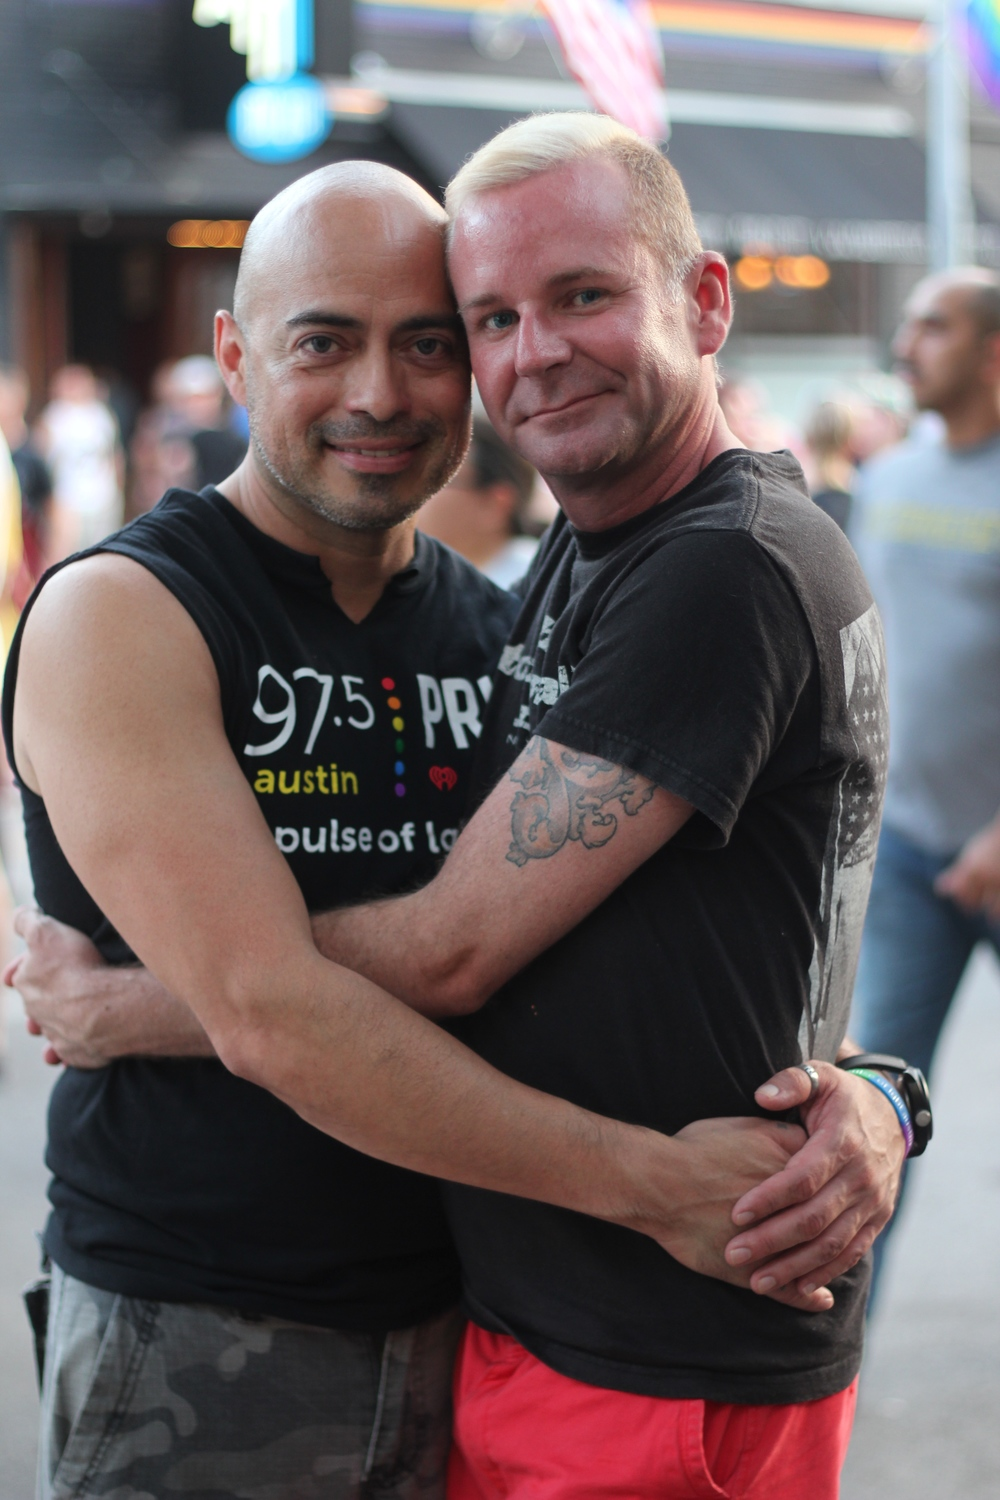 Friends Ross and Gil hug each other following the vigil and offer support to their community.